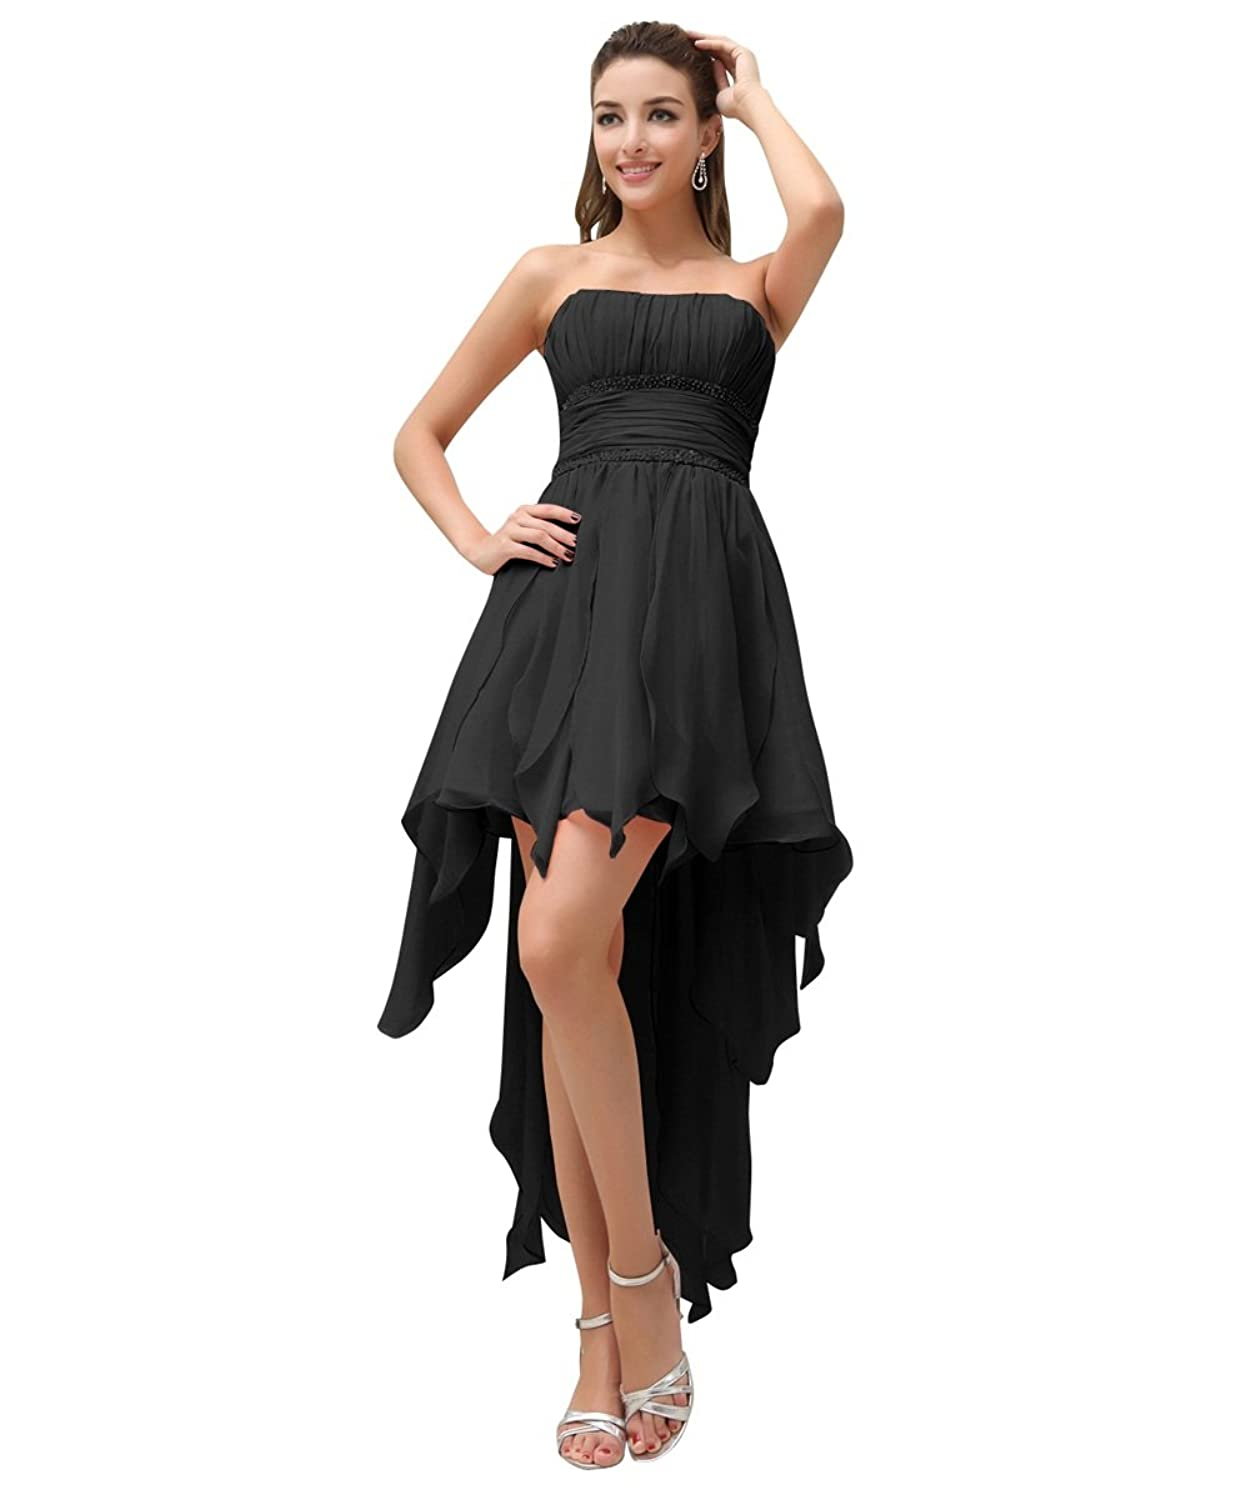 Preferhouse Women's High Low Cocktail Dresses Ruffles Evening Party for Juniors